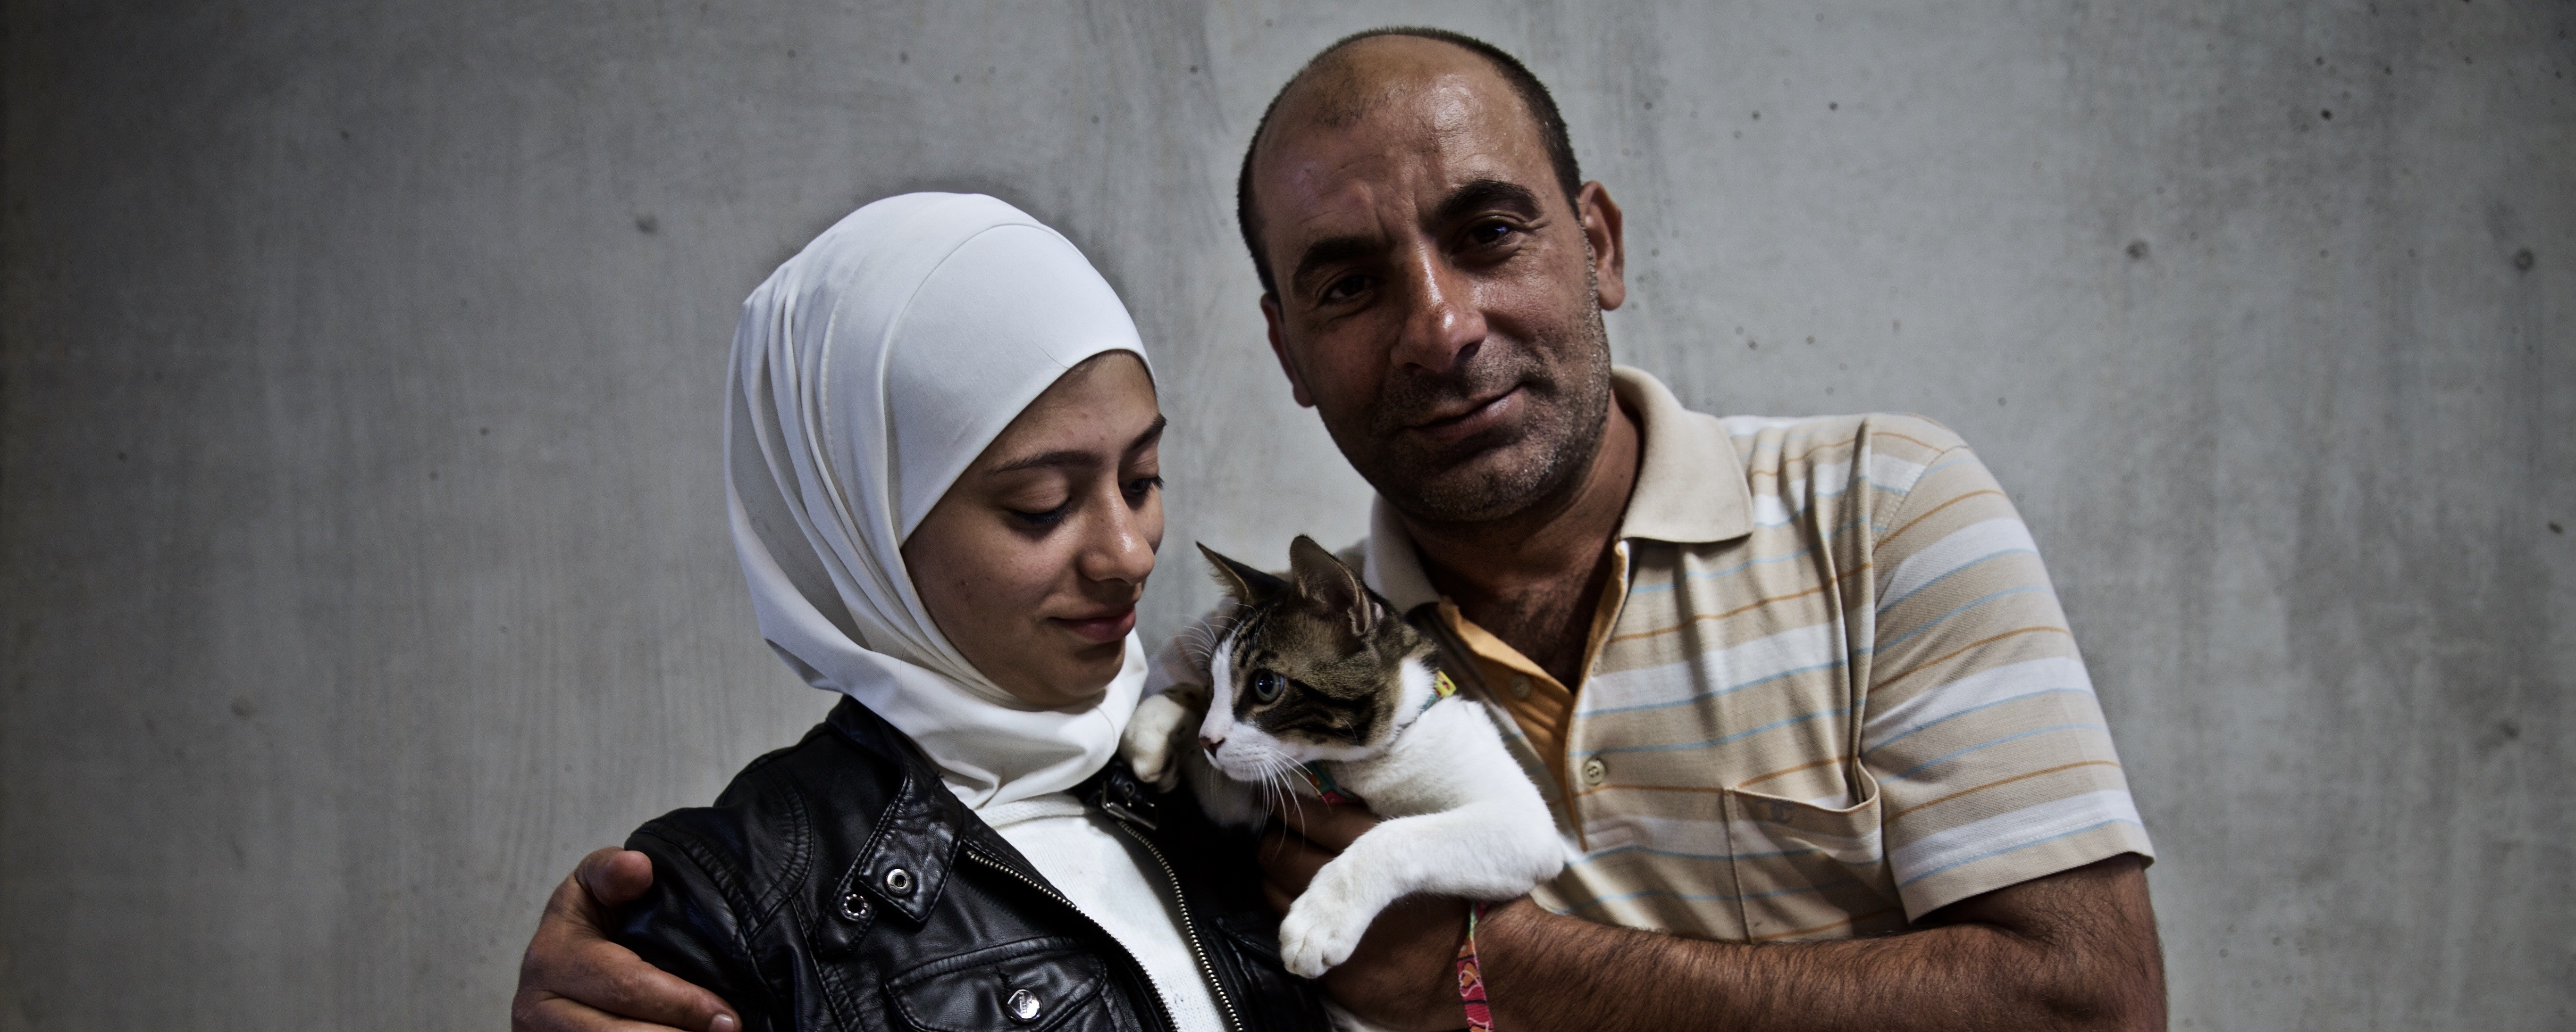 In Photos: The People, Families — and a Cat — Who Battled to Reach Europe